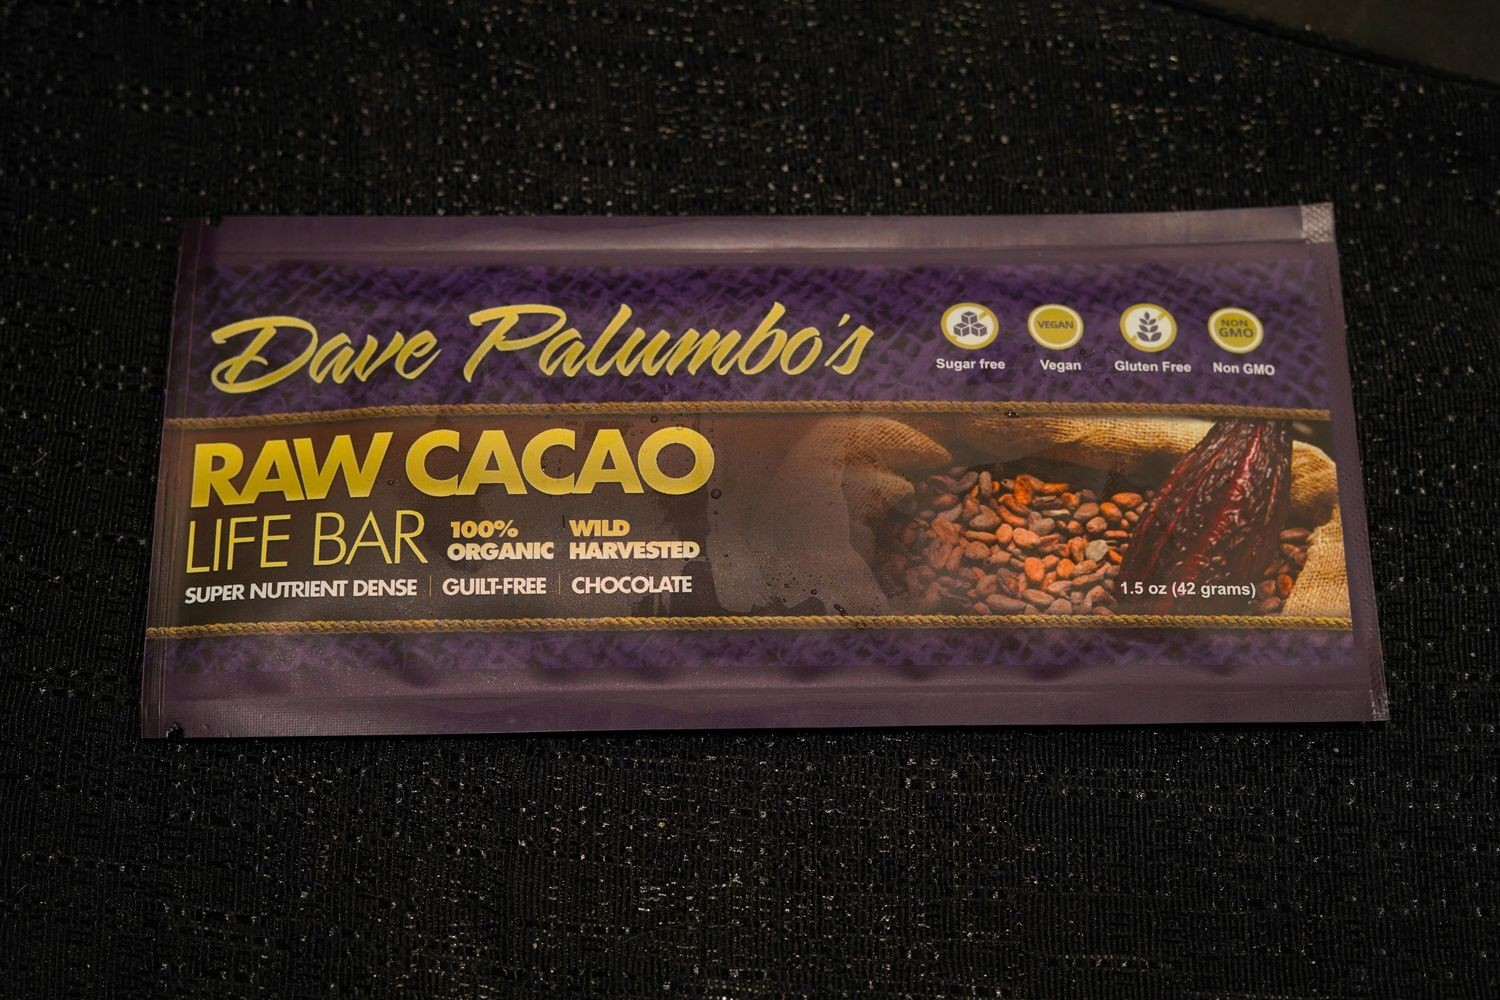 Dave Palumbo's Raw Cacao Bars